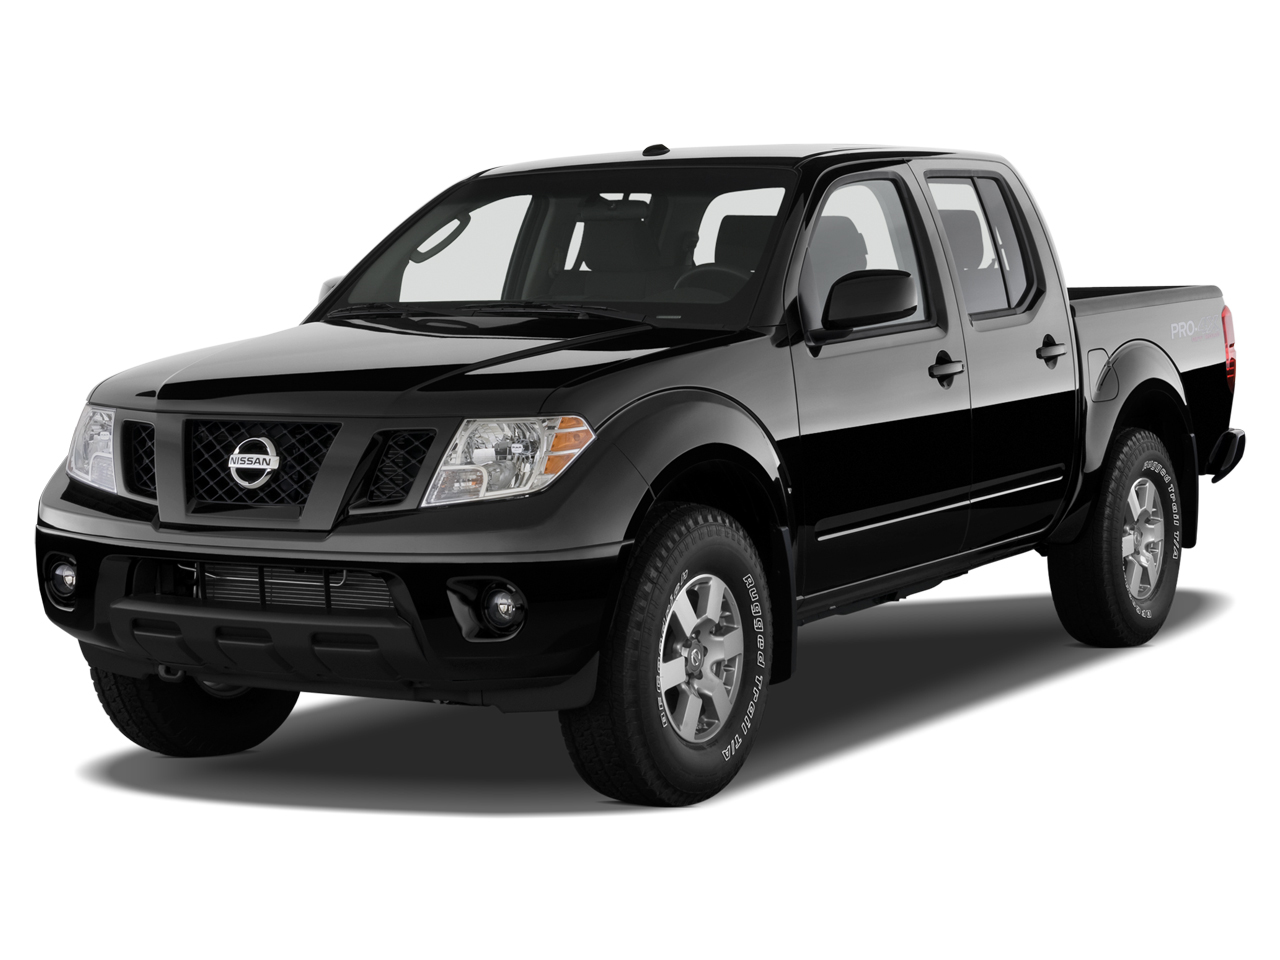 2012 nissan frontier safety review and crash test ratings the 2012 nissan frontier safety review and crash test ratings the car connection vanachro Image collections